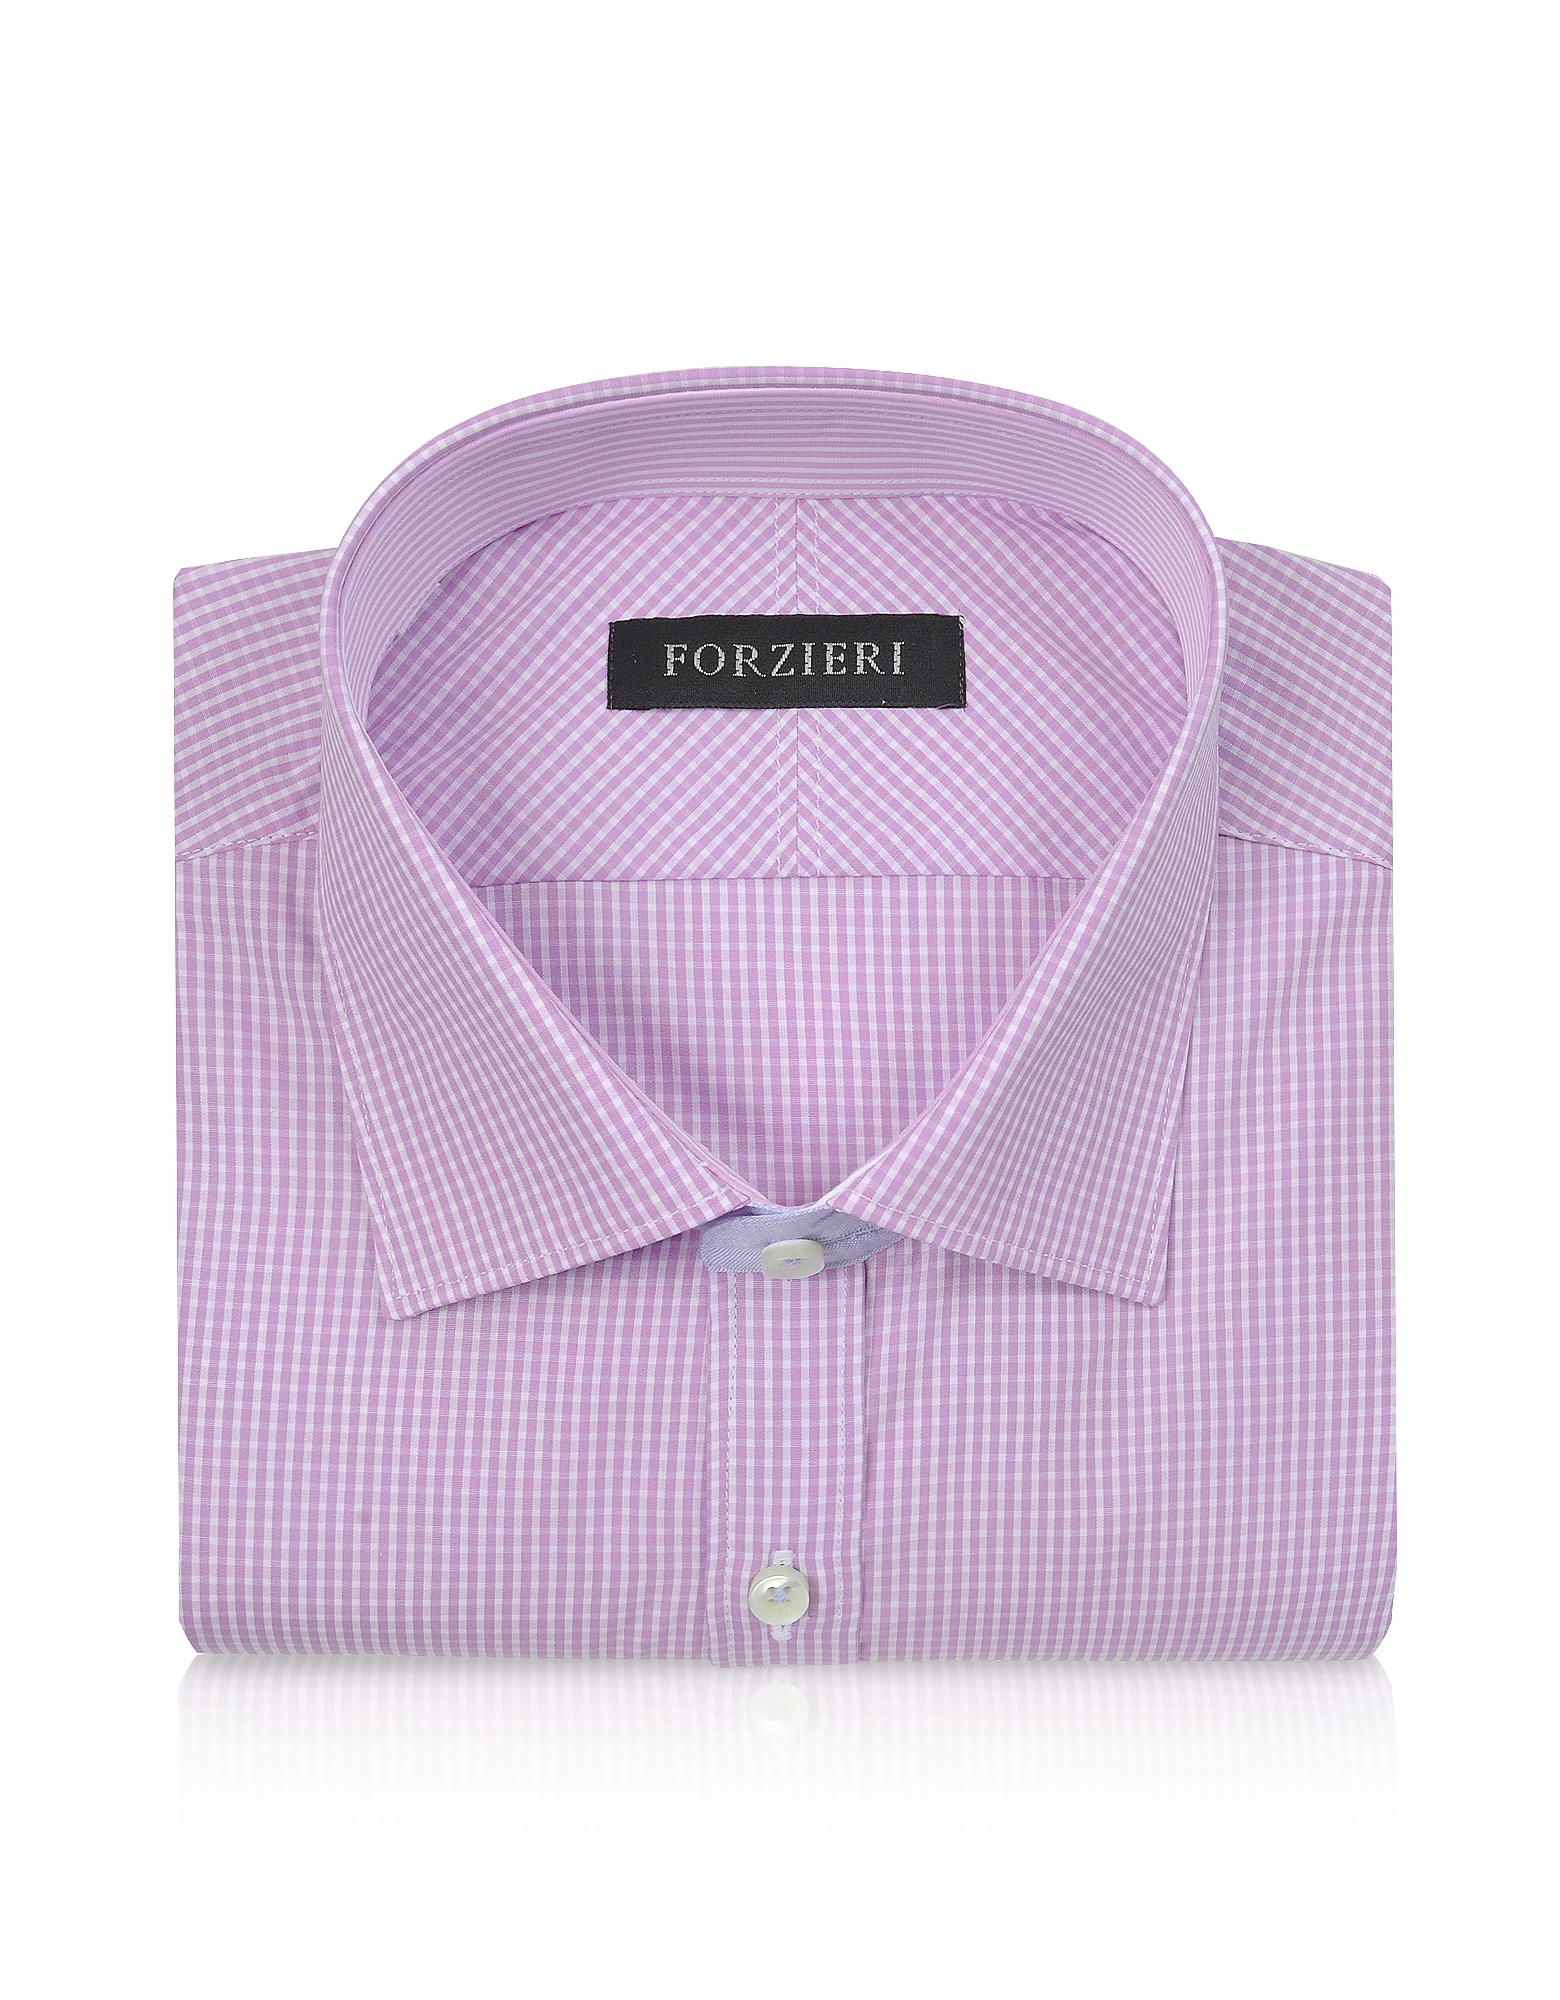 Slim Fit White and Pink Check Cotton Dress Shirt